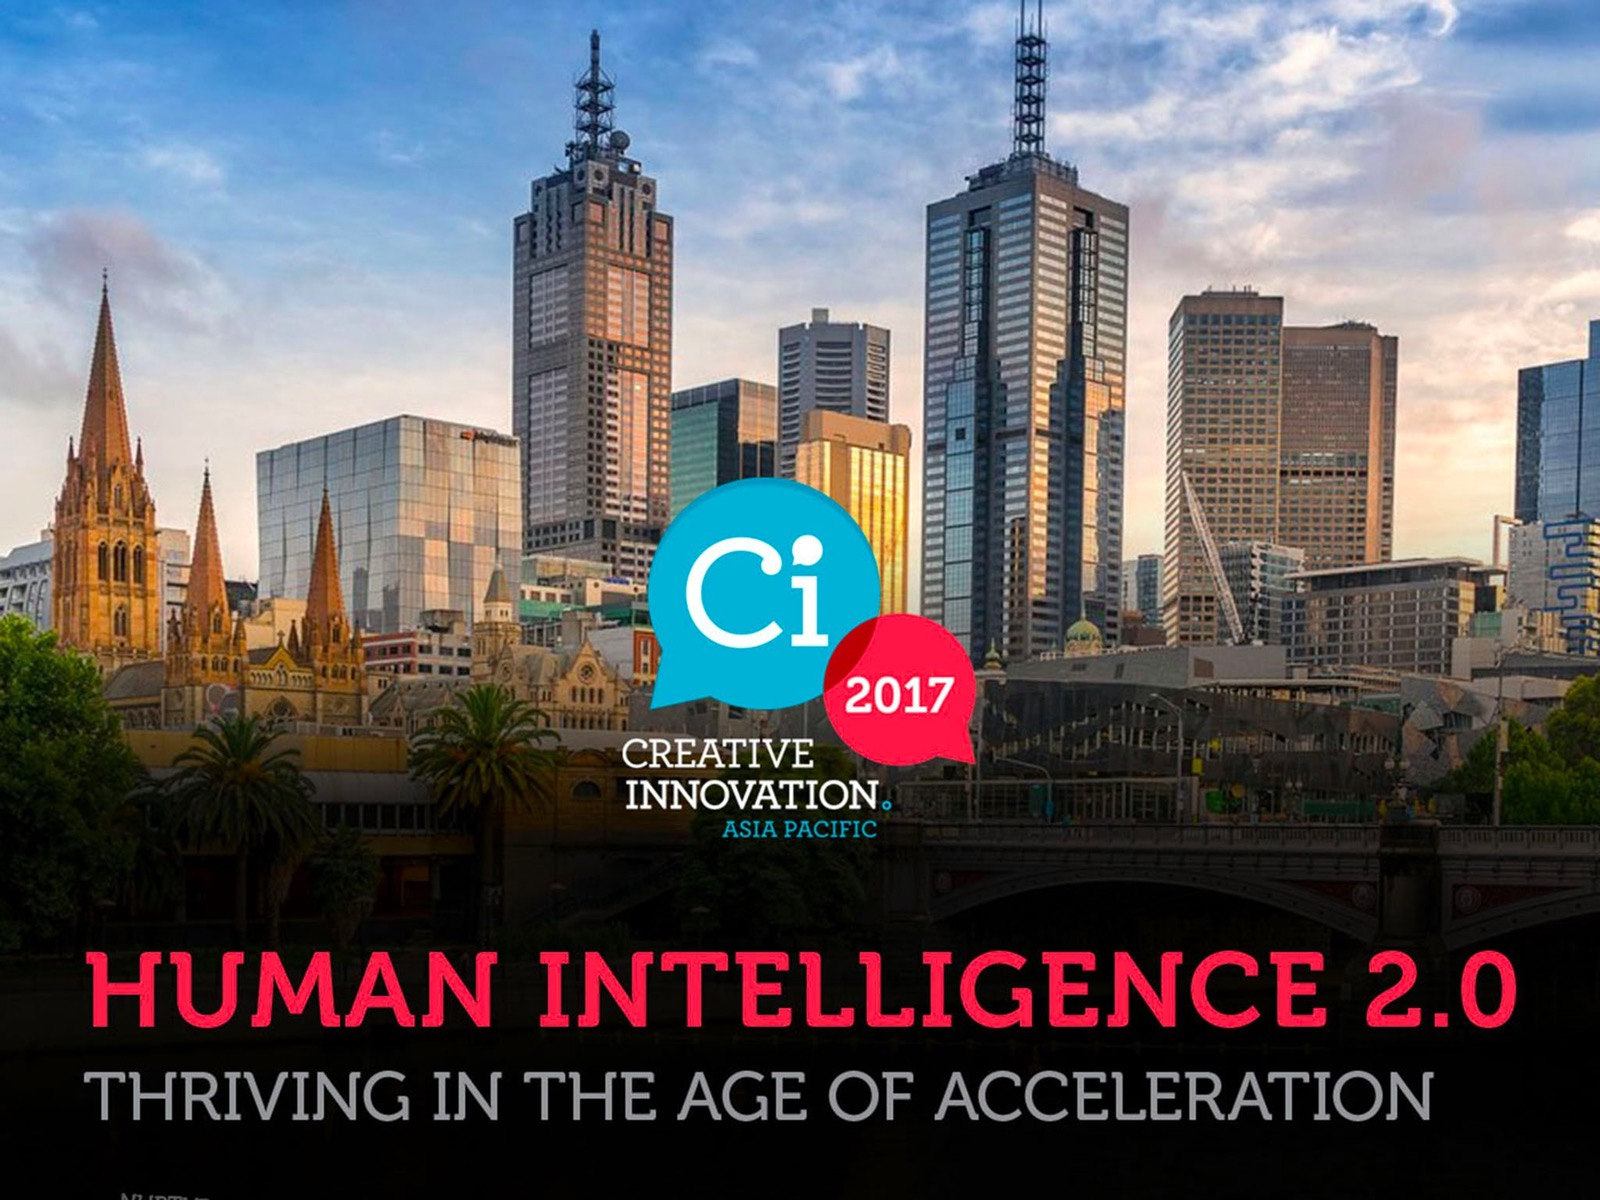 Human Intelligence 2.0 Thriving in the Age of Acceleration